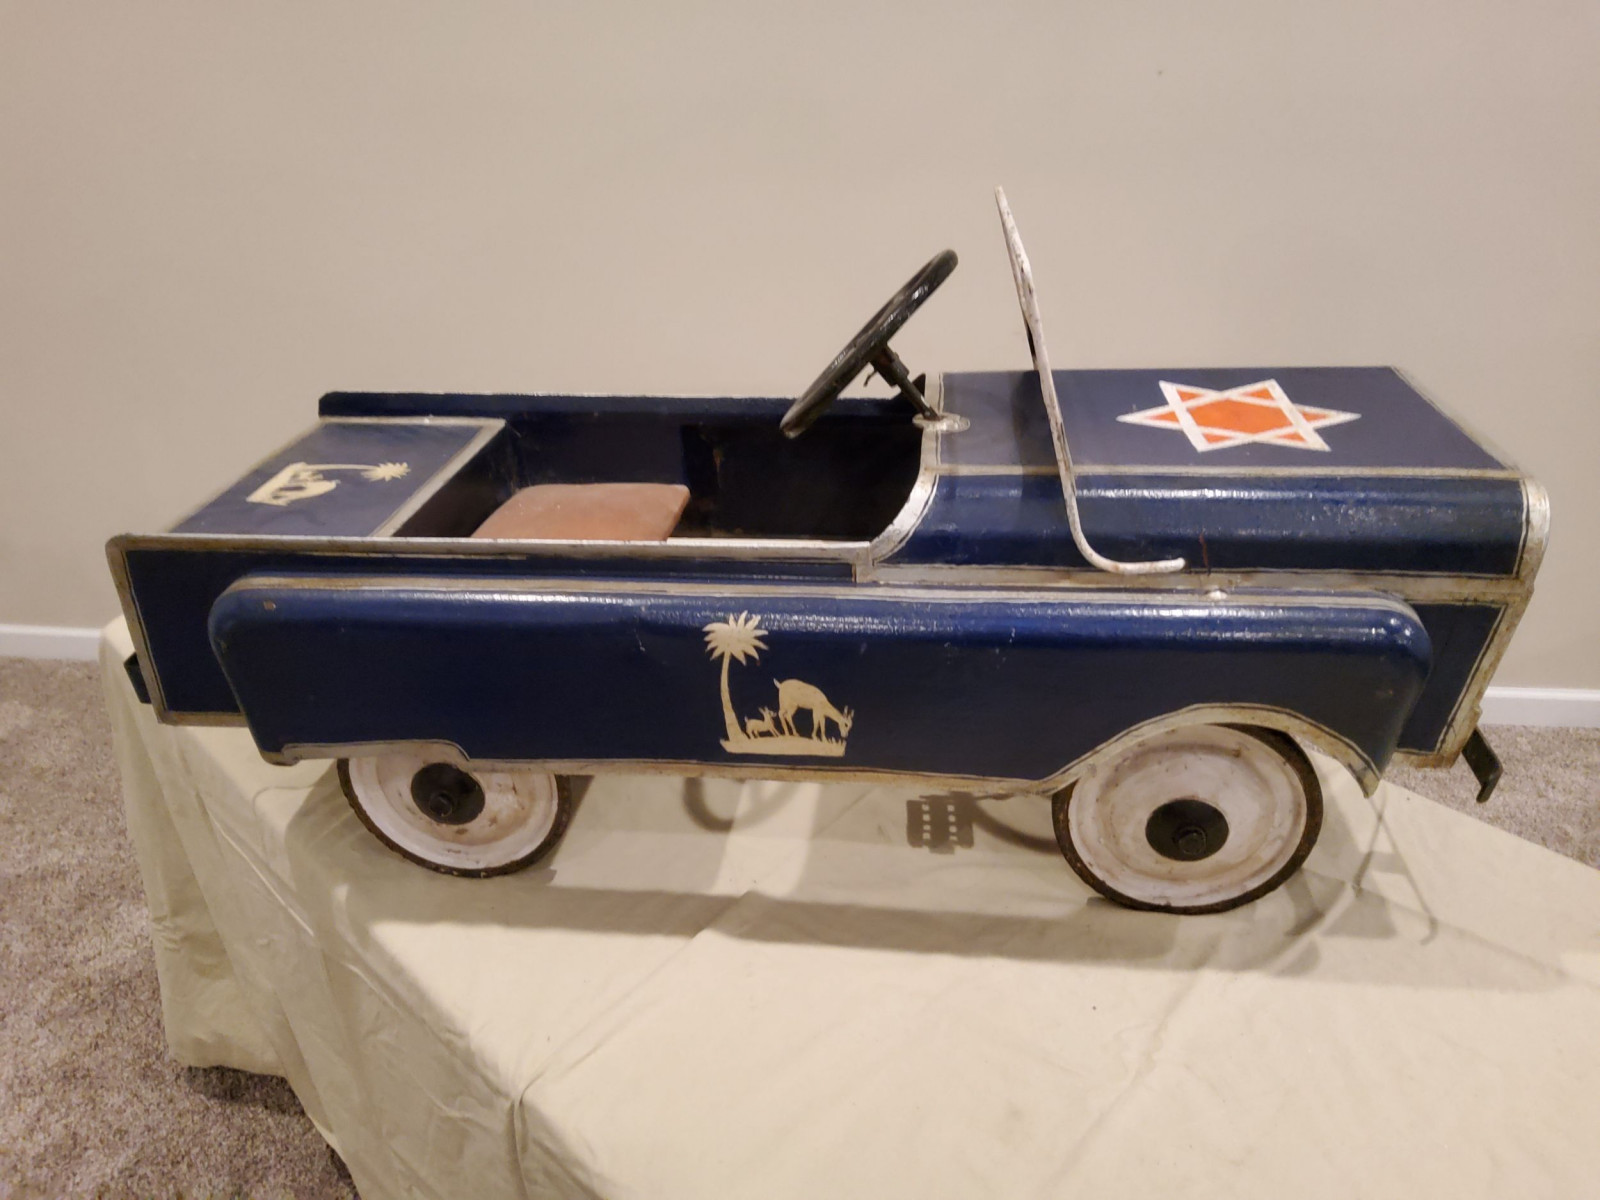 1963 Jeep Pedal Car - Image 9